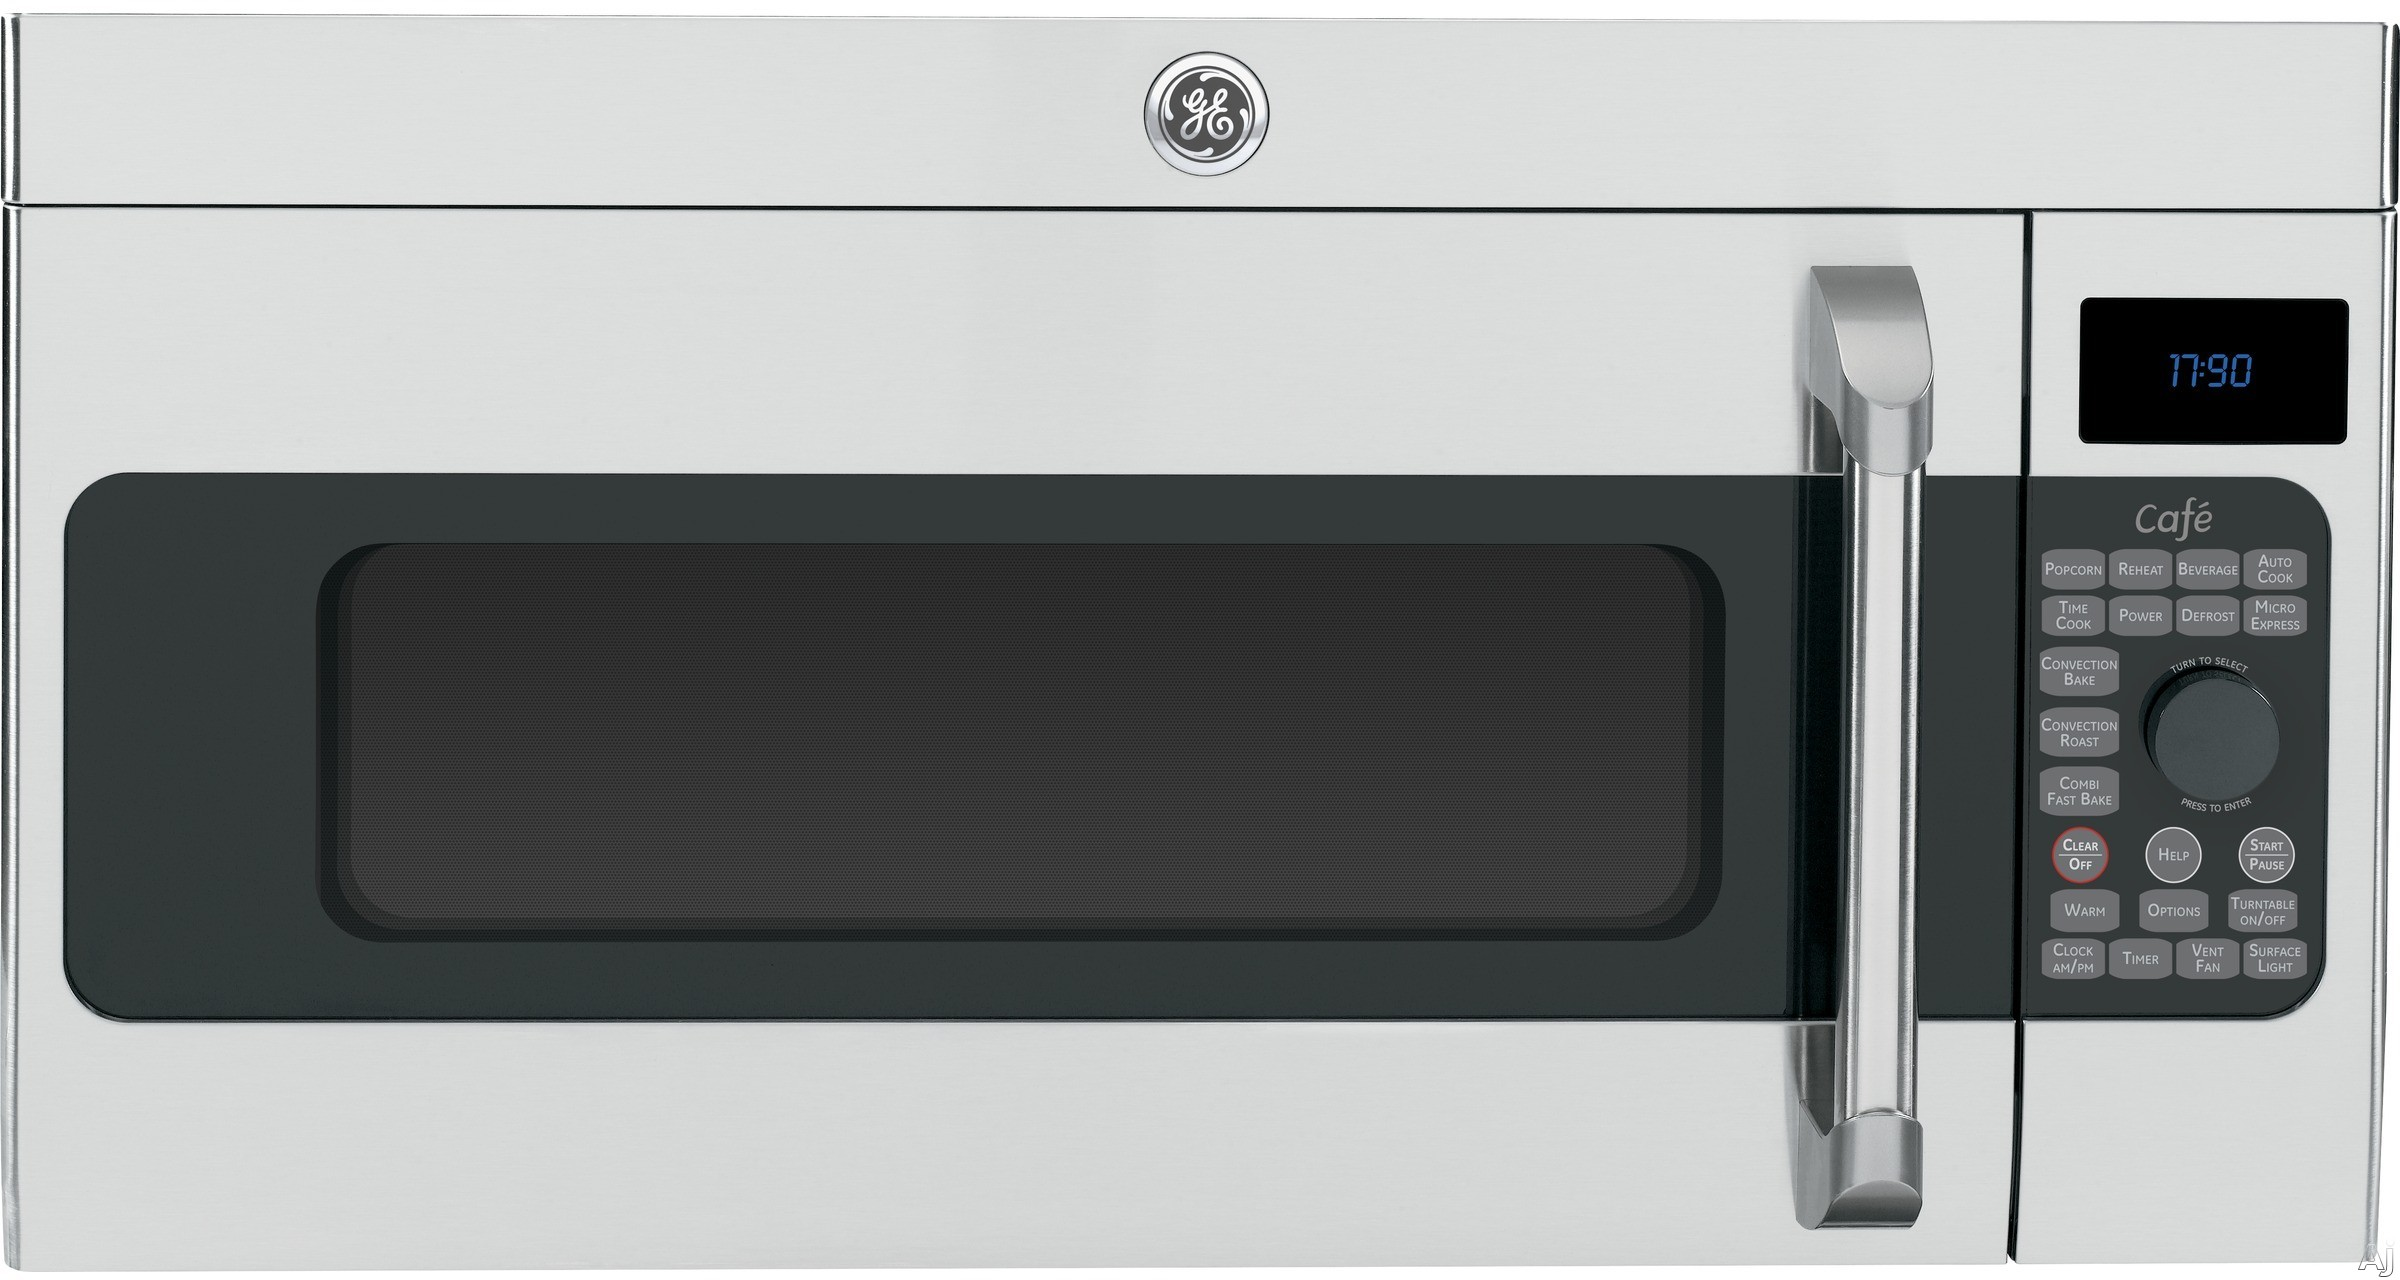 GE Cafe Series CVM1790SSSS 1.7 cu. ft. Over-the-Range Microwave Oven with 1,550 Convection Watts, 300 CFM Vortex Venting System, Sensor Cooking, Fast Bake, Warming Oven and Stainless Steel Interior